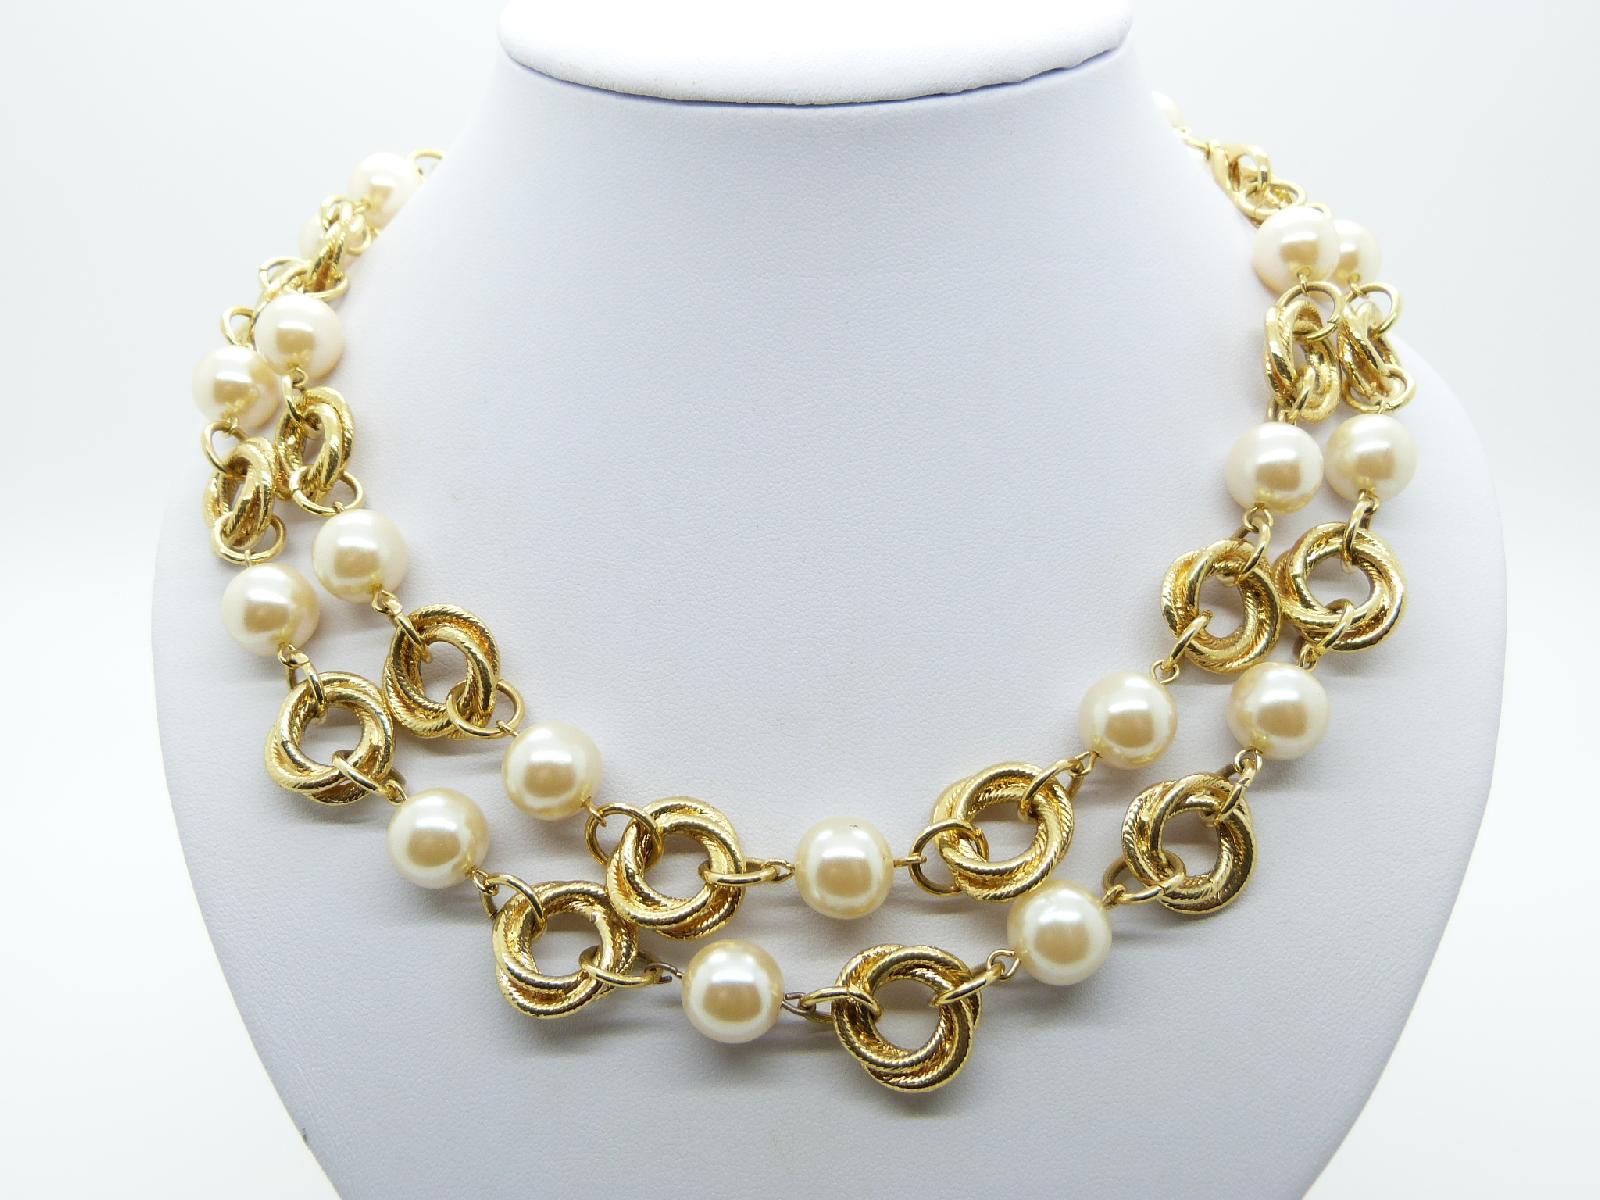 Vintage 80s Stunning Glass Faux Pearl Bead Double Link Goldtone Necklace